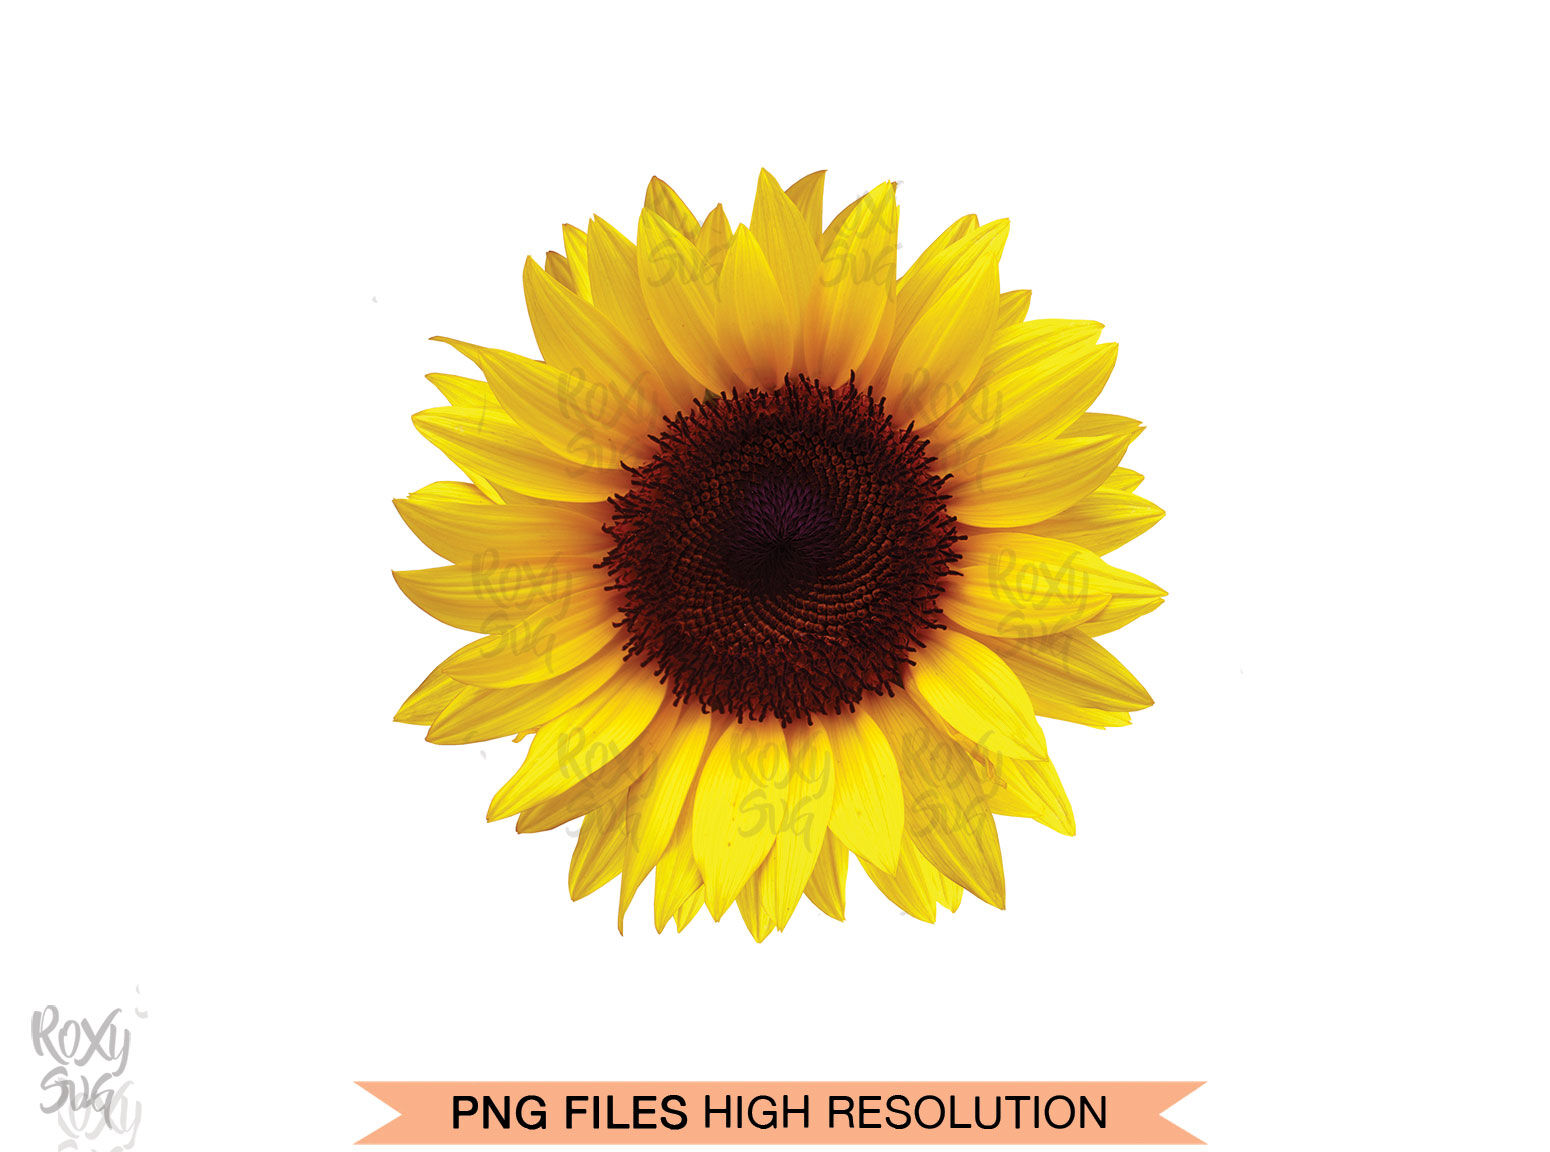 Half Sunflower Whole Sunflower Sunflower Clipart By Lovely